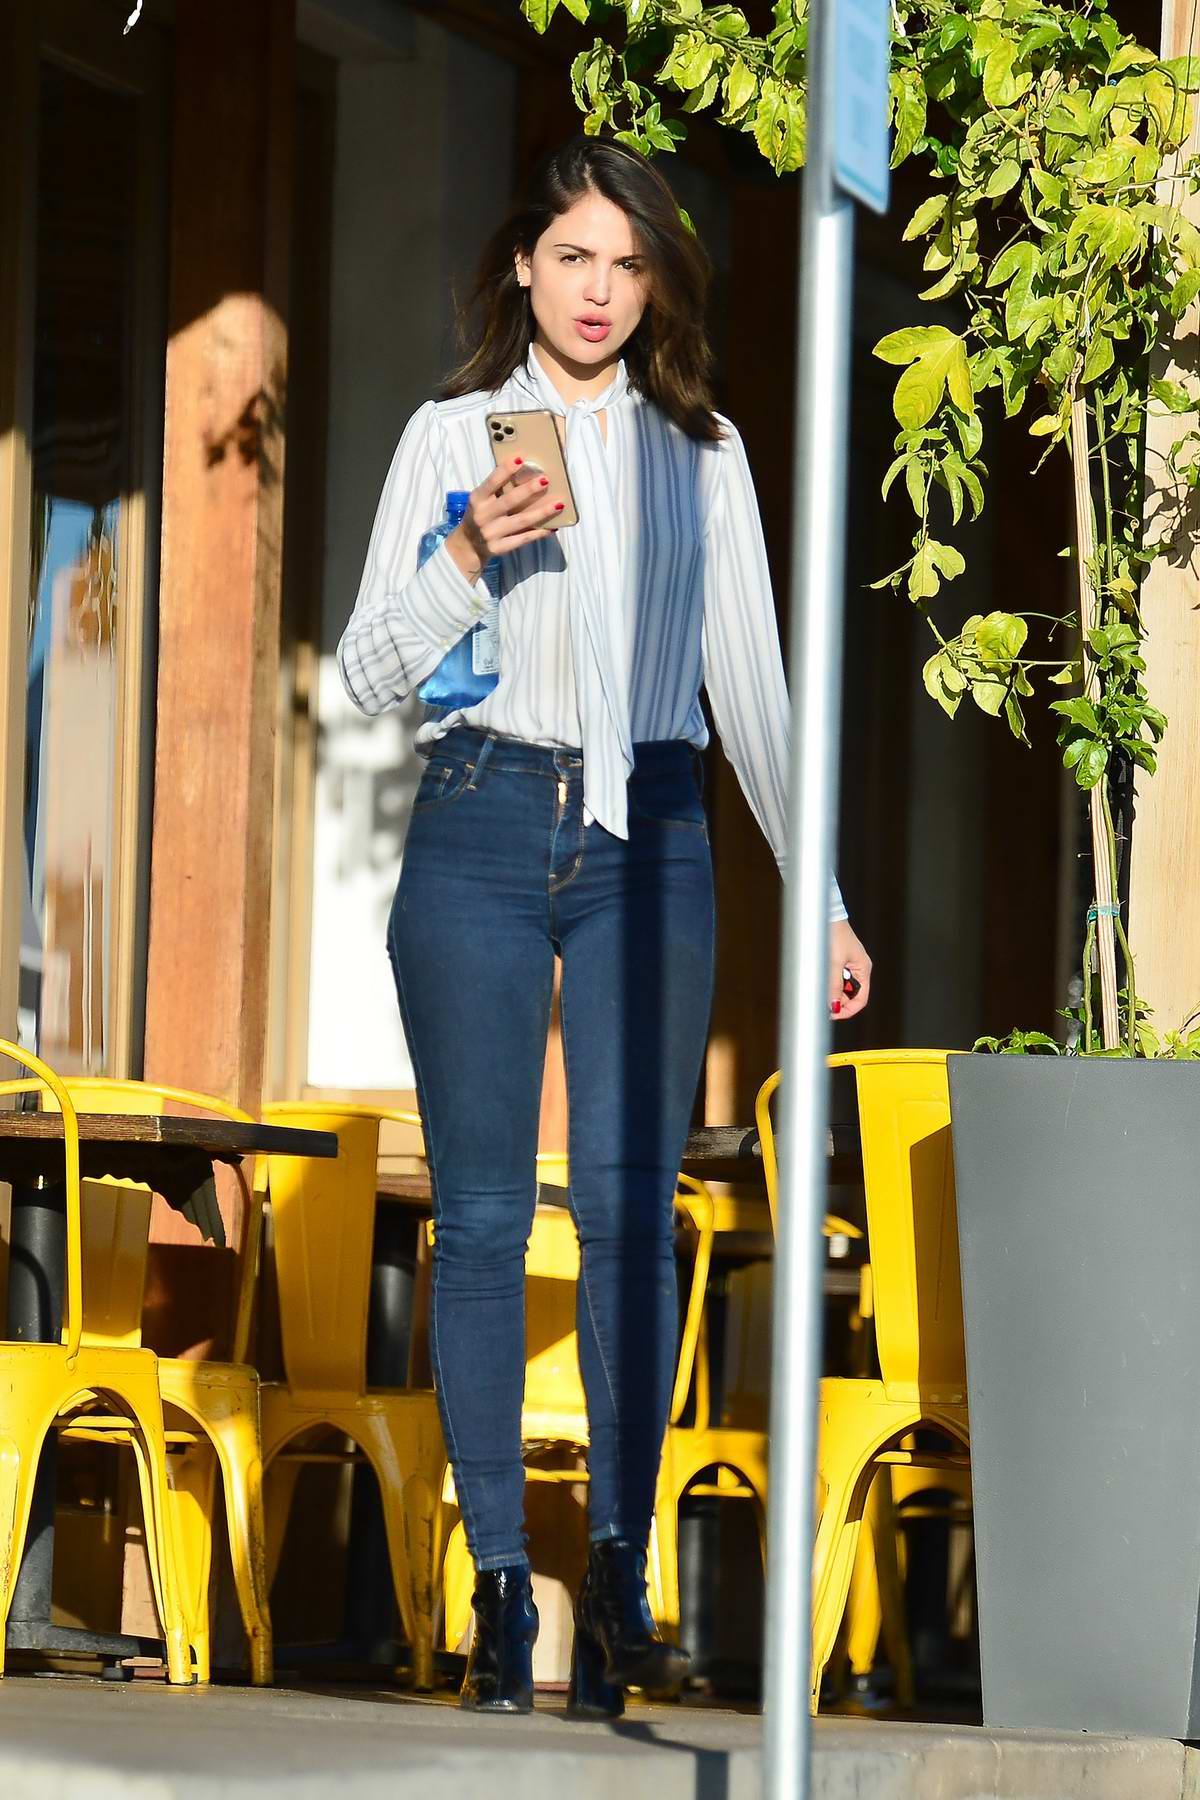 Eiza Gonzalez looks fashionable as she steps out to run a few errands in Los Angeles